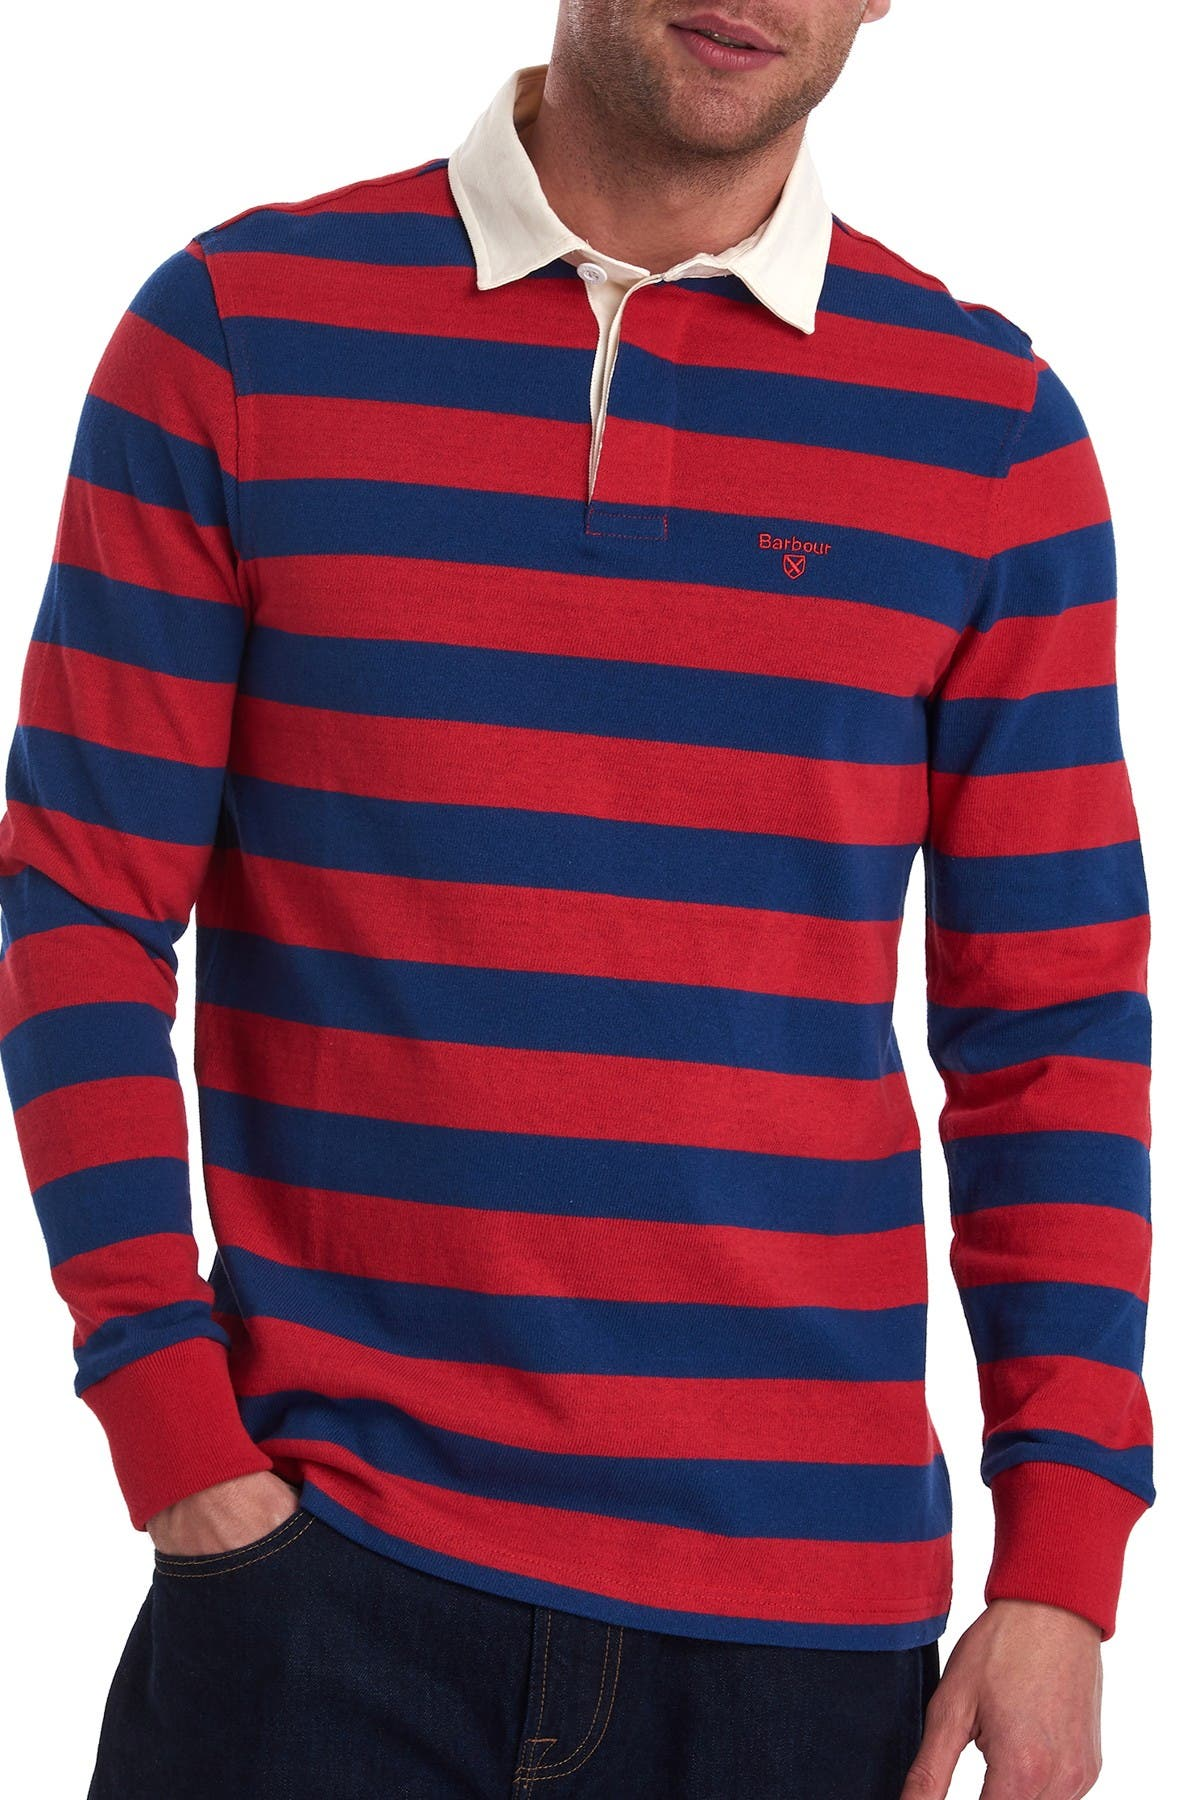 Thomas /& Friends Striped Long Sleeve Polo Rugby Top